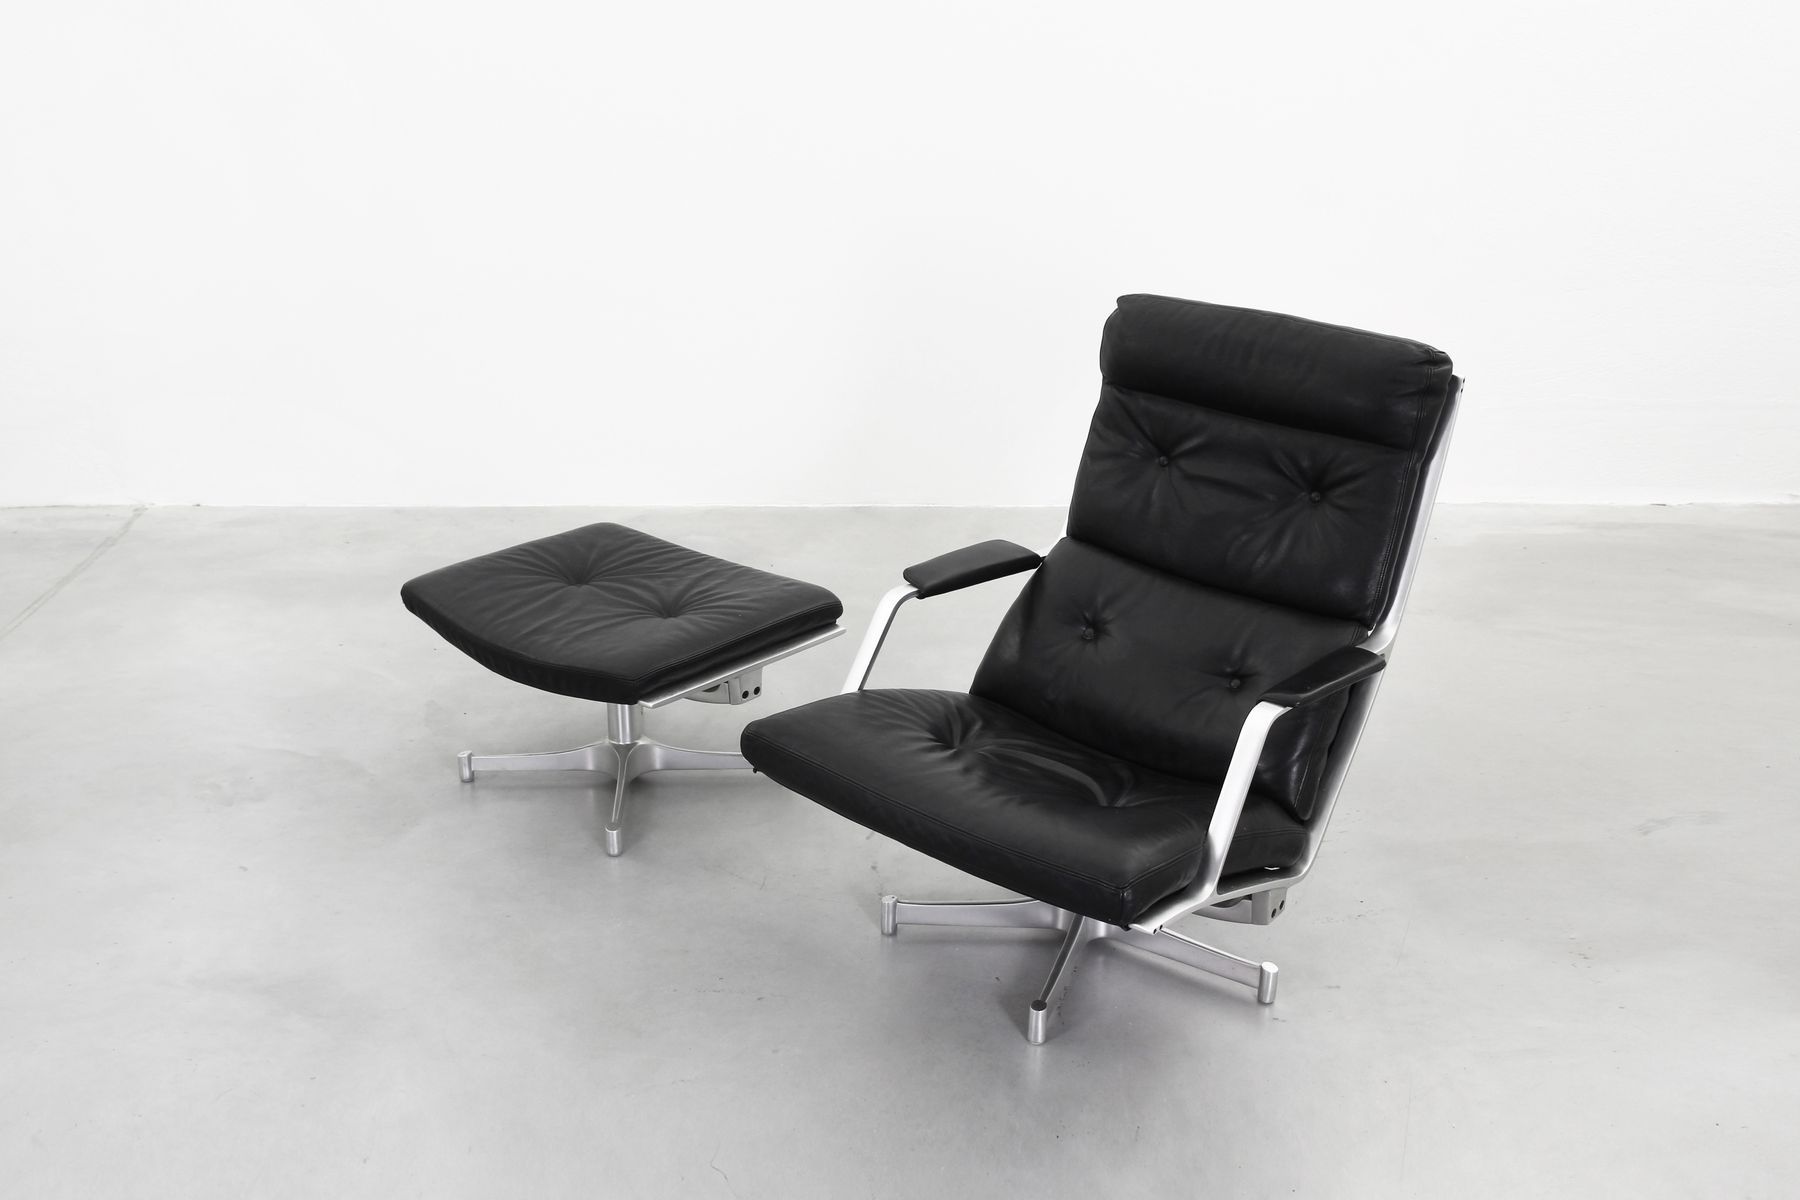 black leather recliner htm and fjords in backstore havana chair ottoman mustang ergonomic